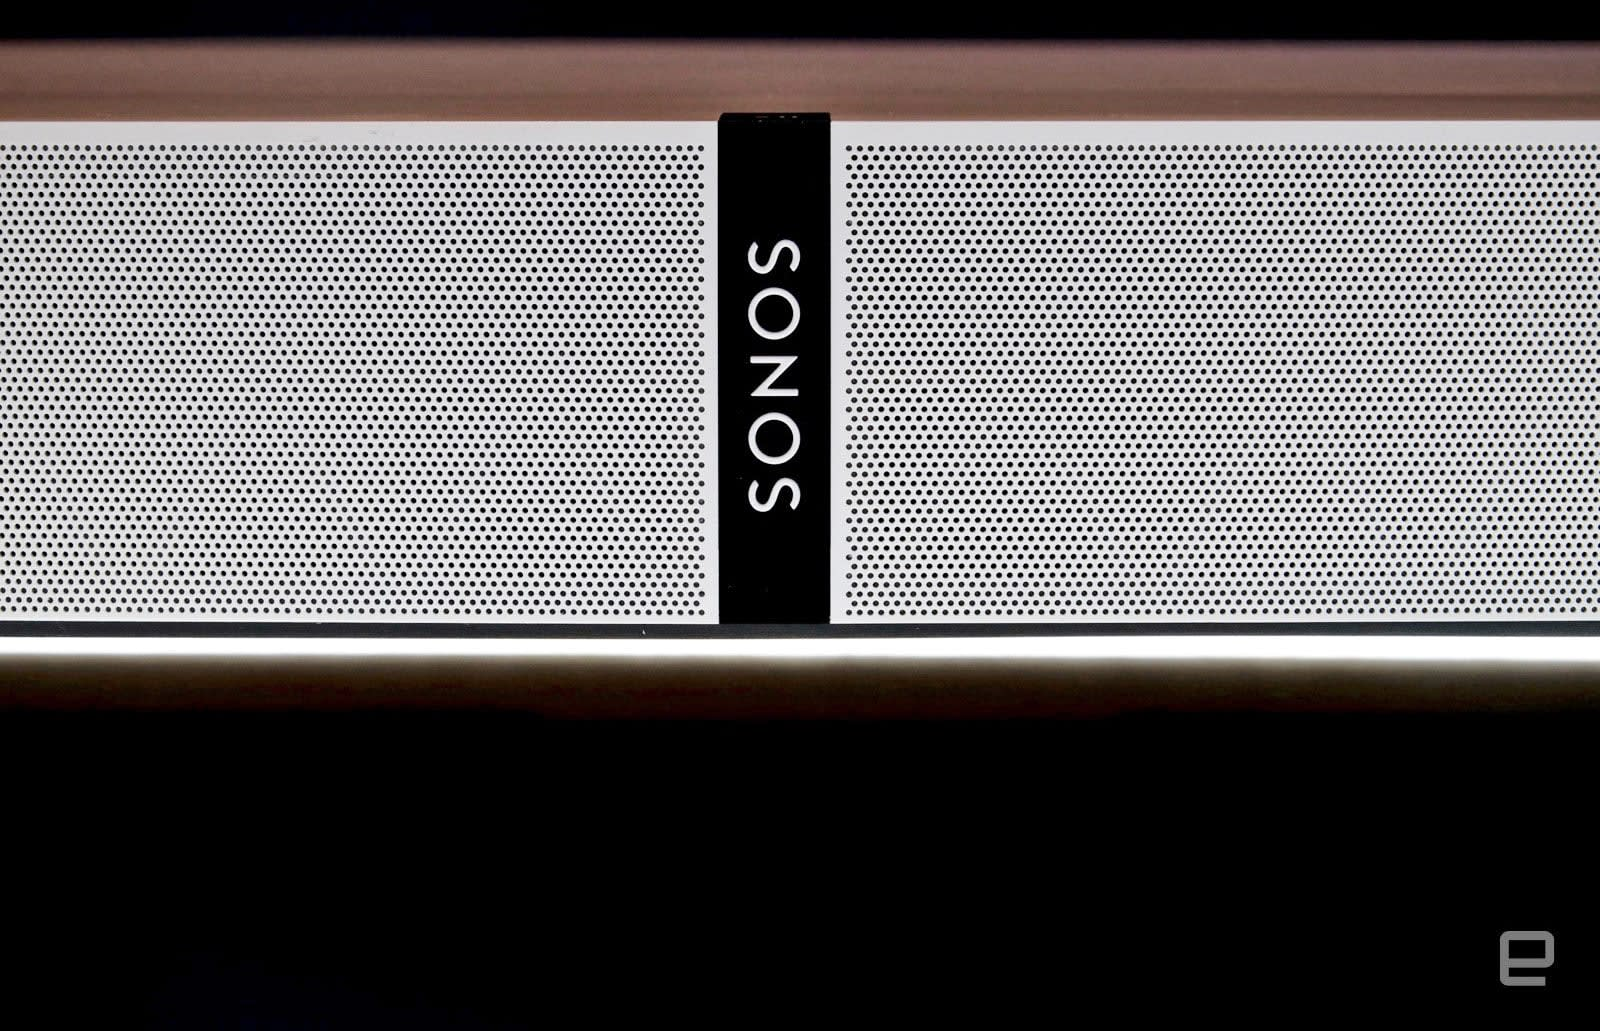 Sonos' public filing shows the challenge of relying on Alexa